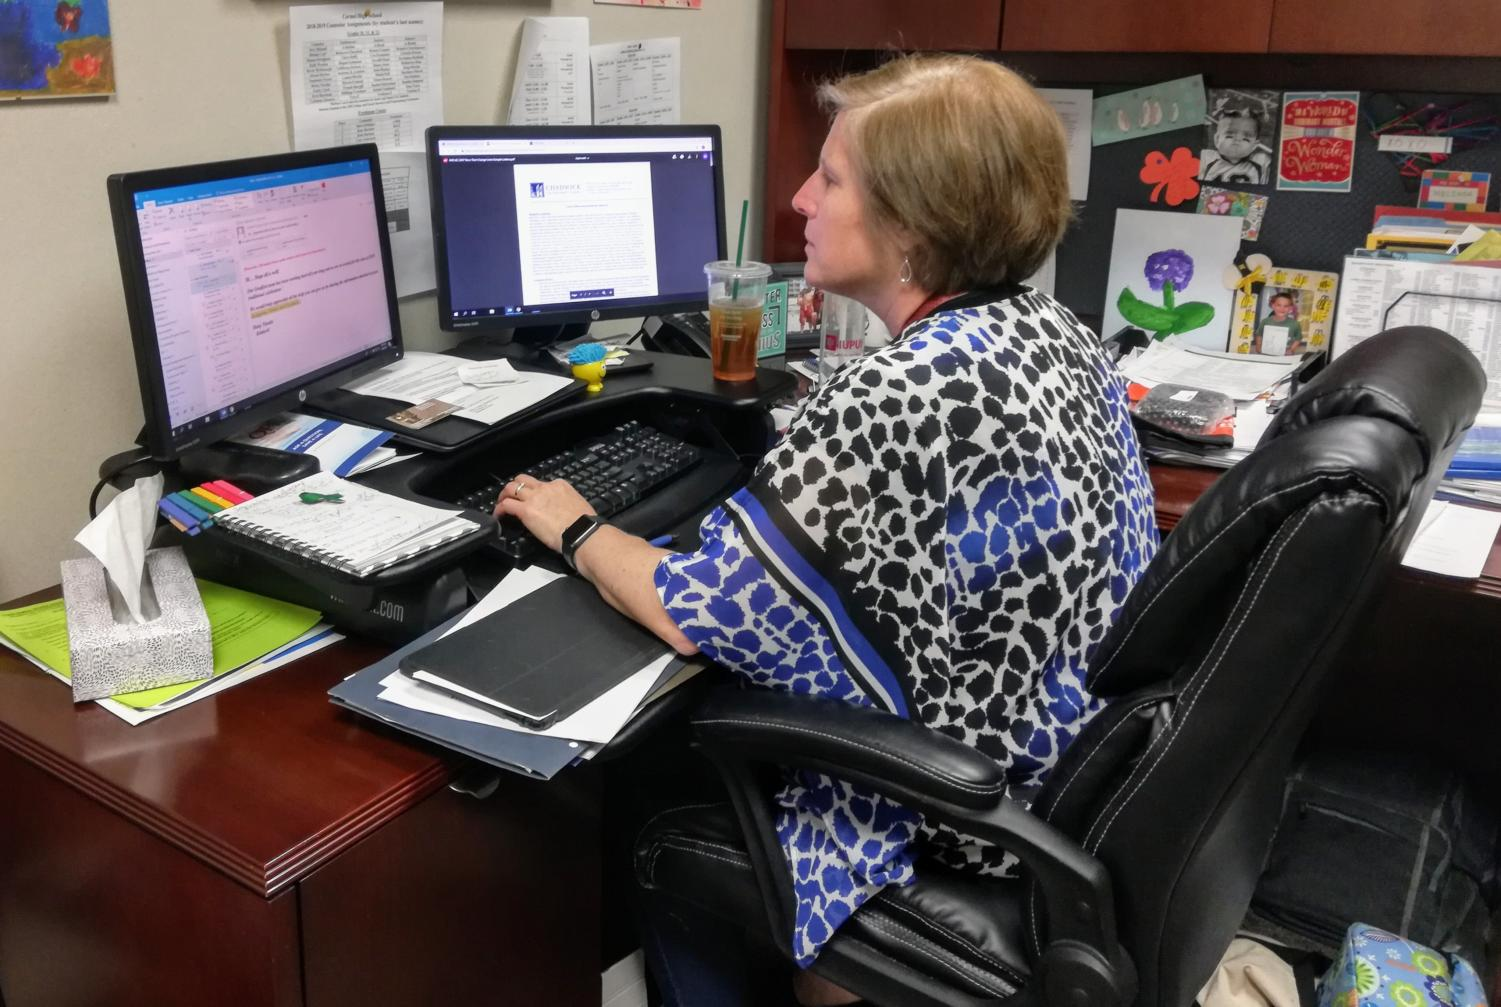 Melinda Stephan, college and careers programming and resources coordinator, reads emails and plans to send out more emails soon about AP exams. The last day of AP testing is May 17.